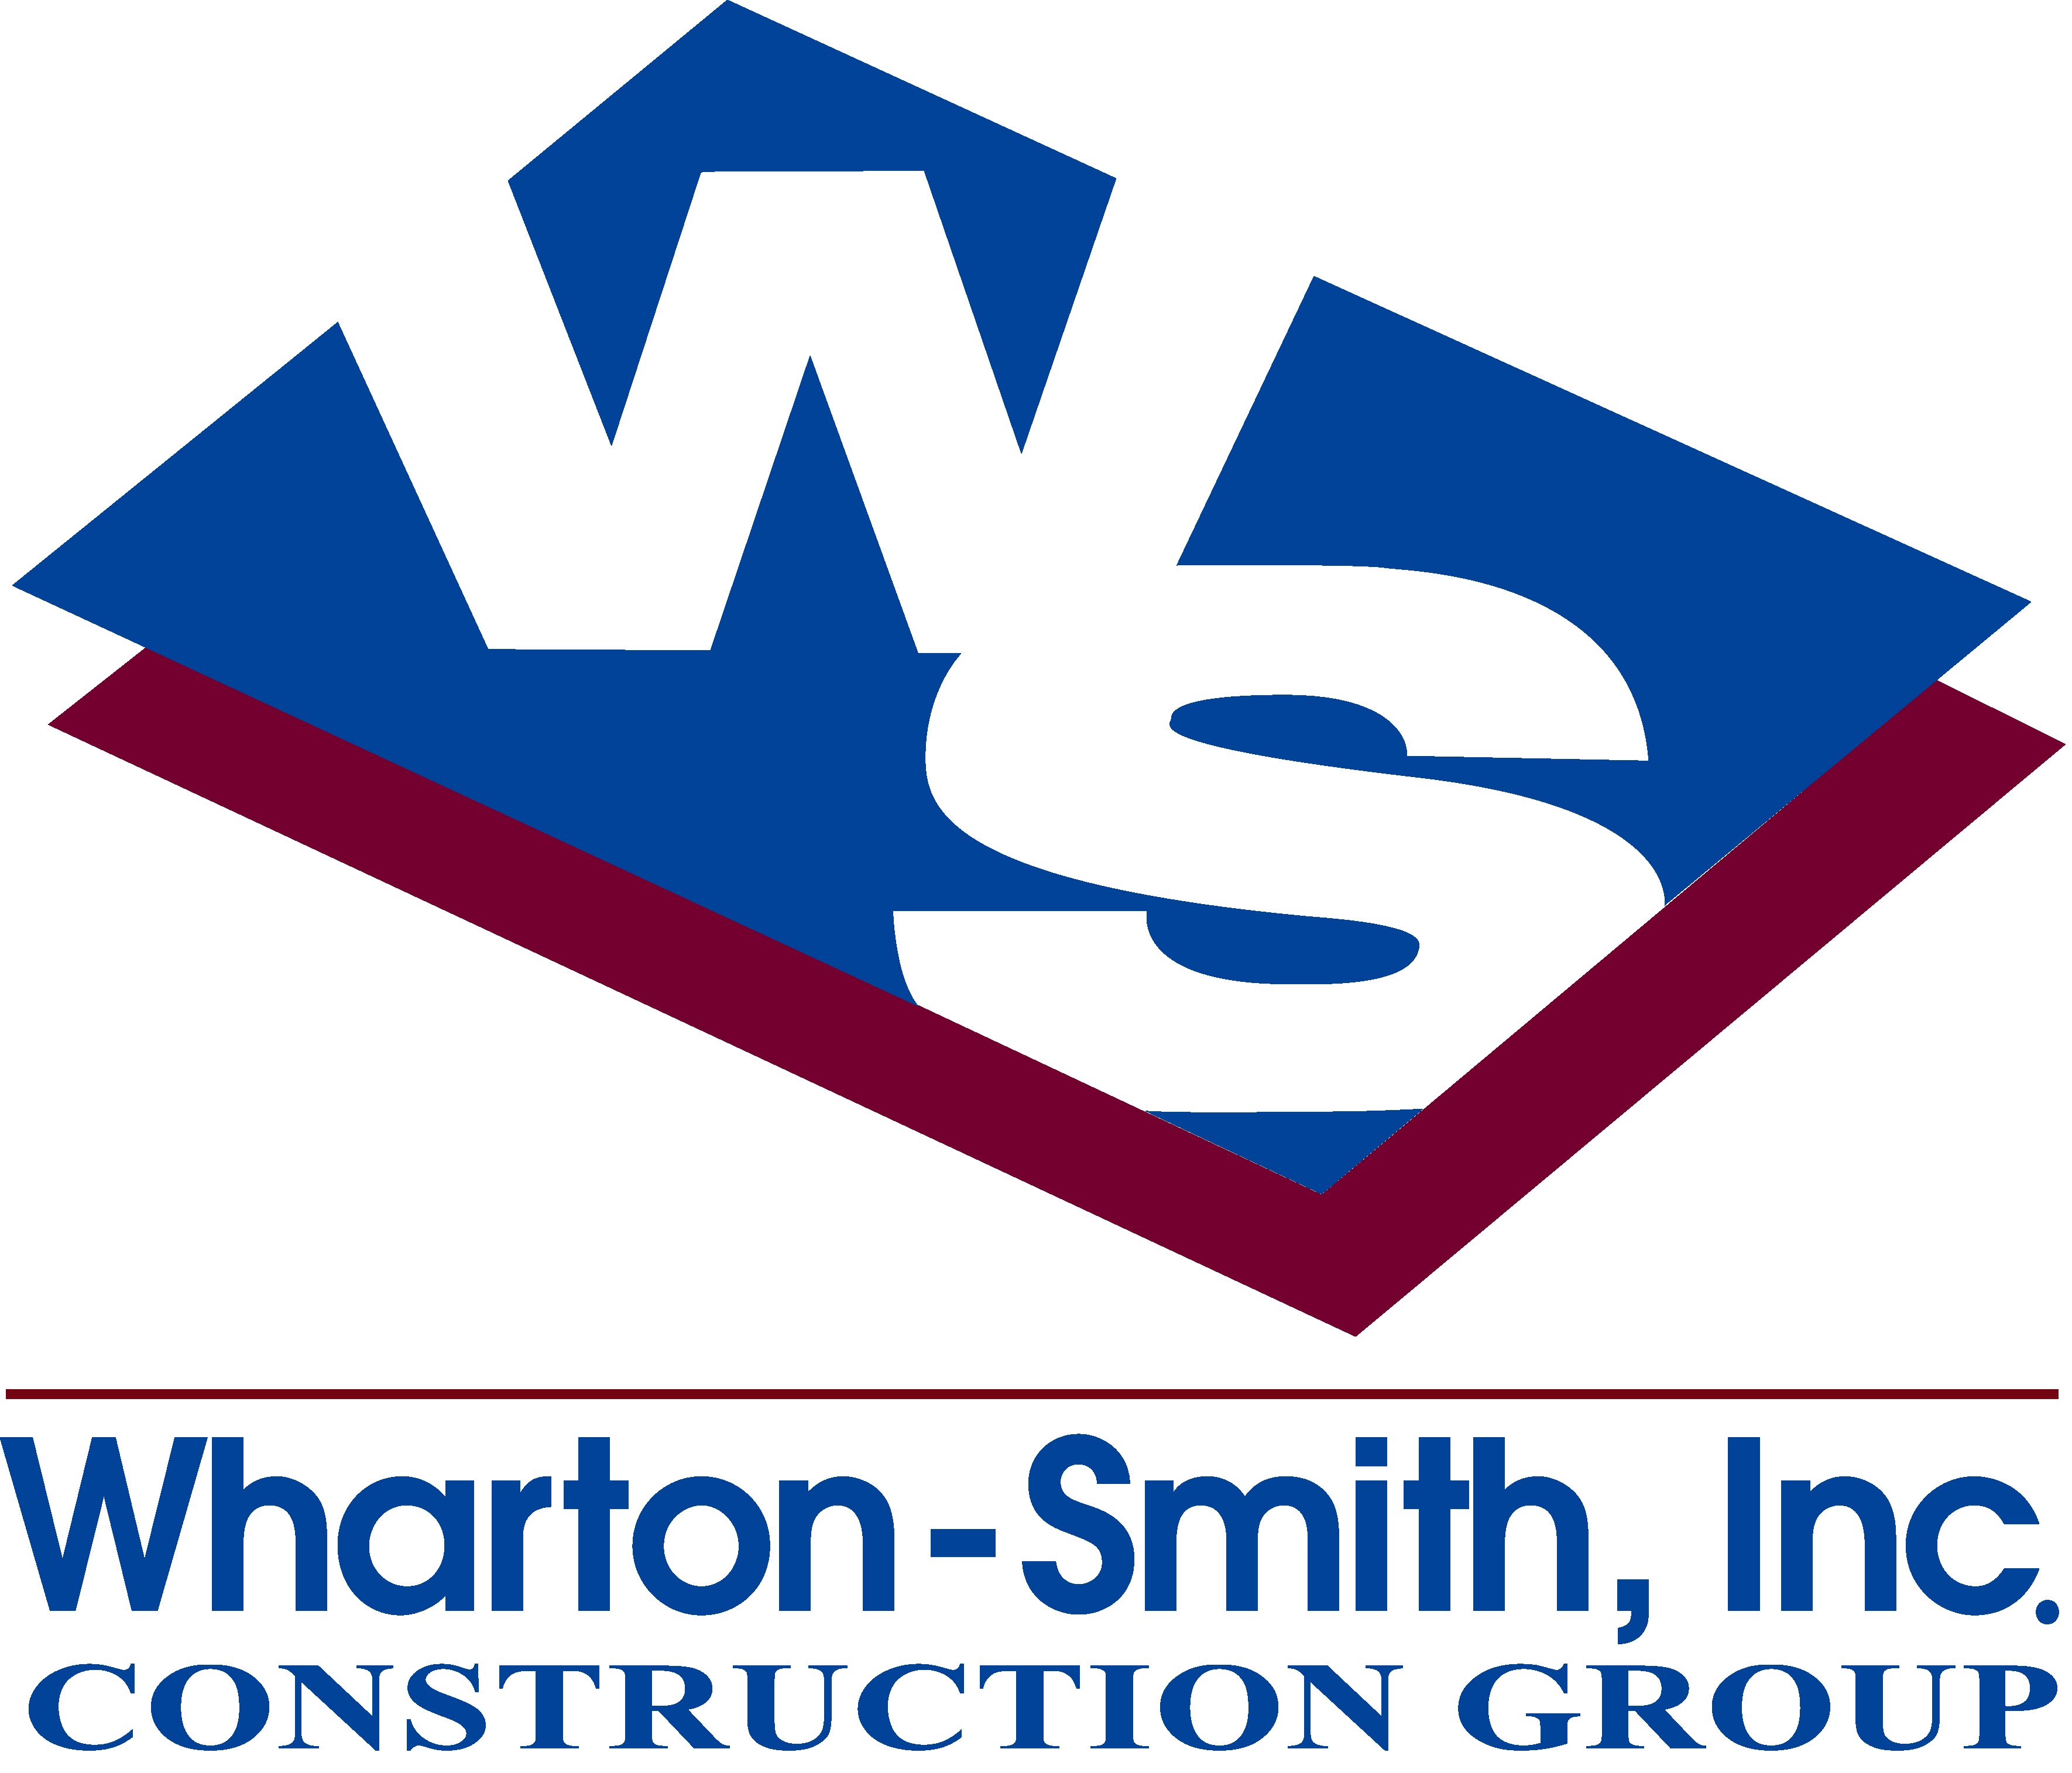 Wharton smith color logo   transparent